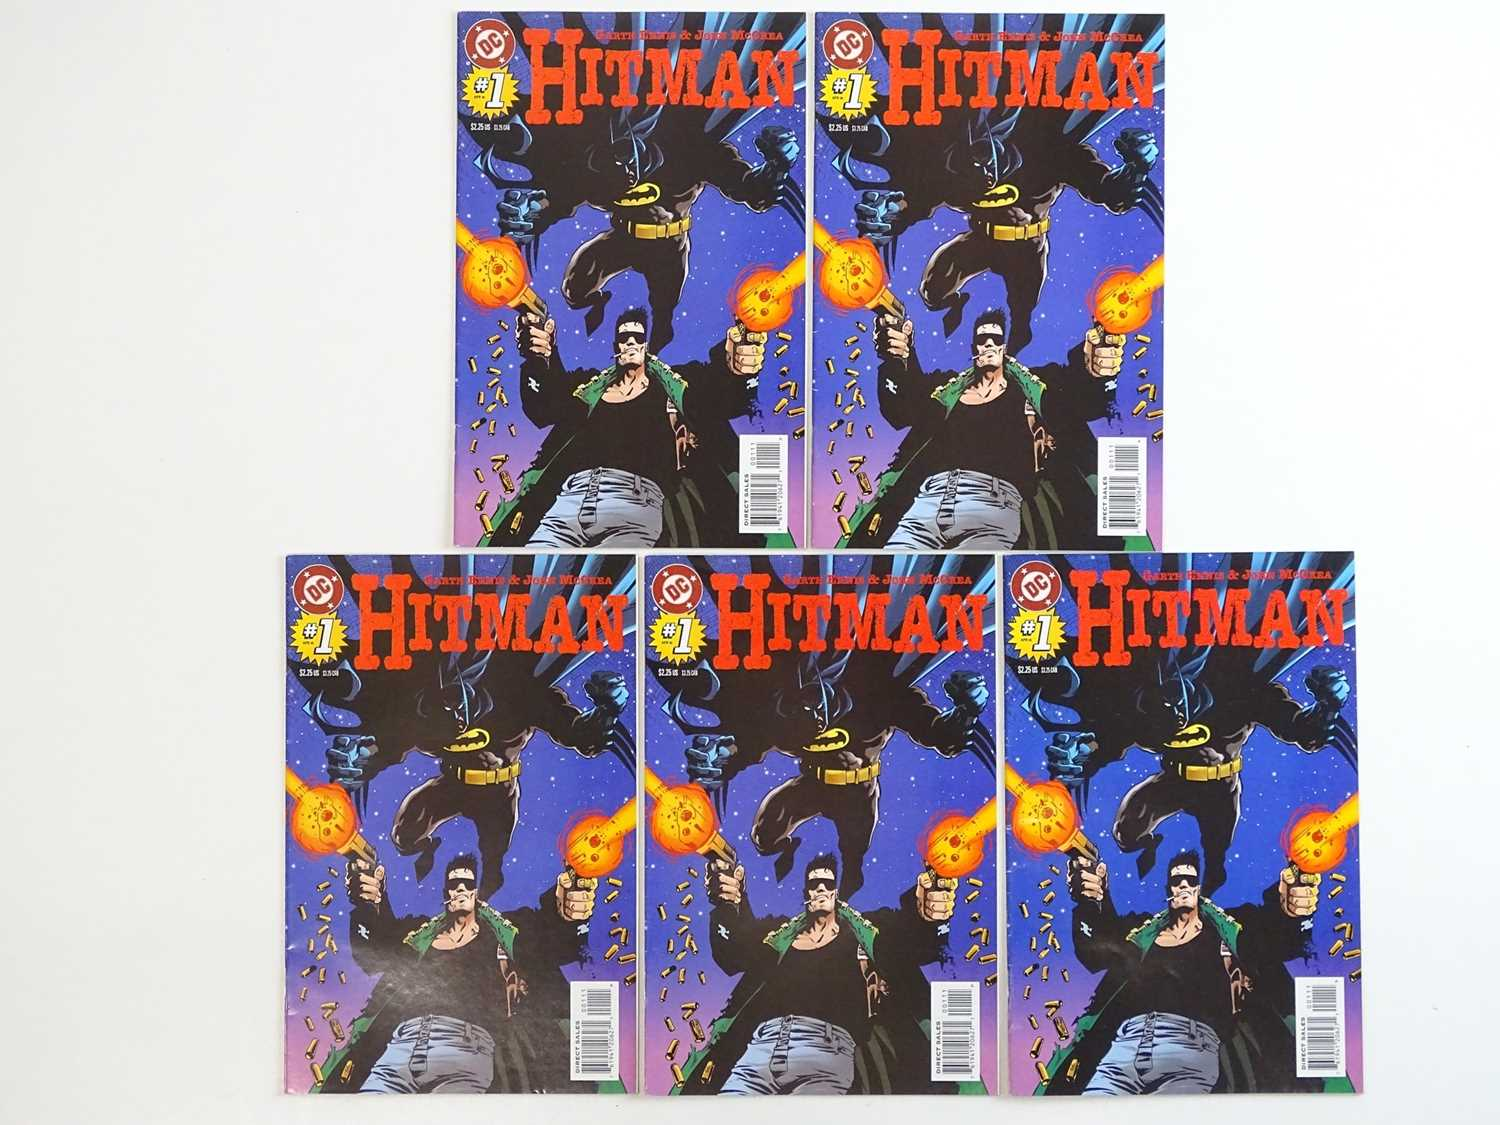 HITMAN #1 - (5 in Lot) - (1996 - DC) - First Printing - Five (5) #1 issues for the DC ongoing series